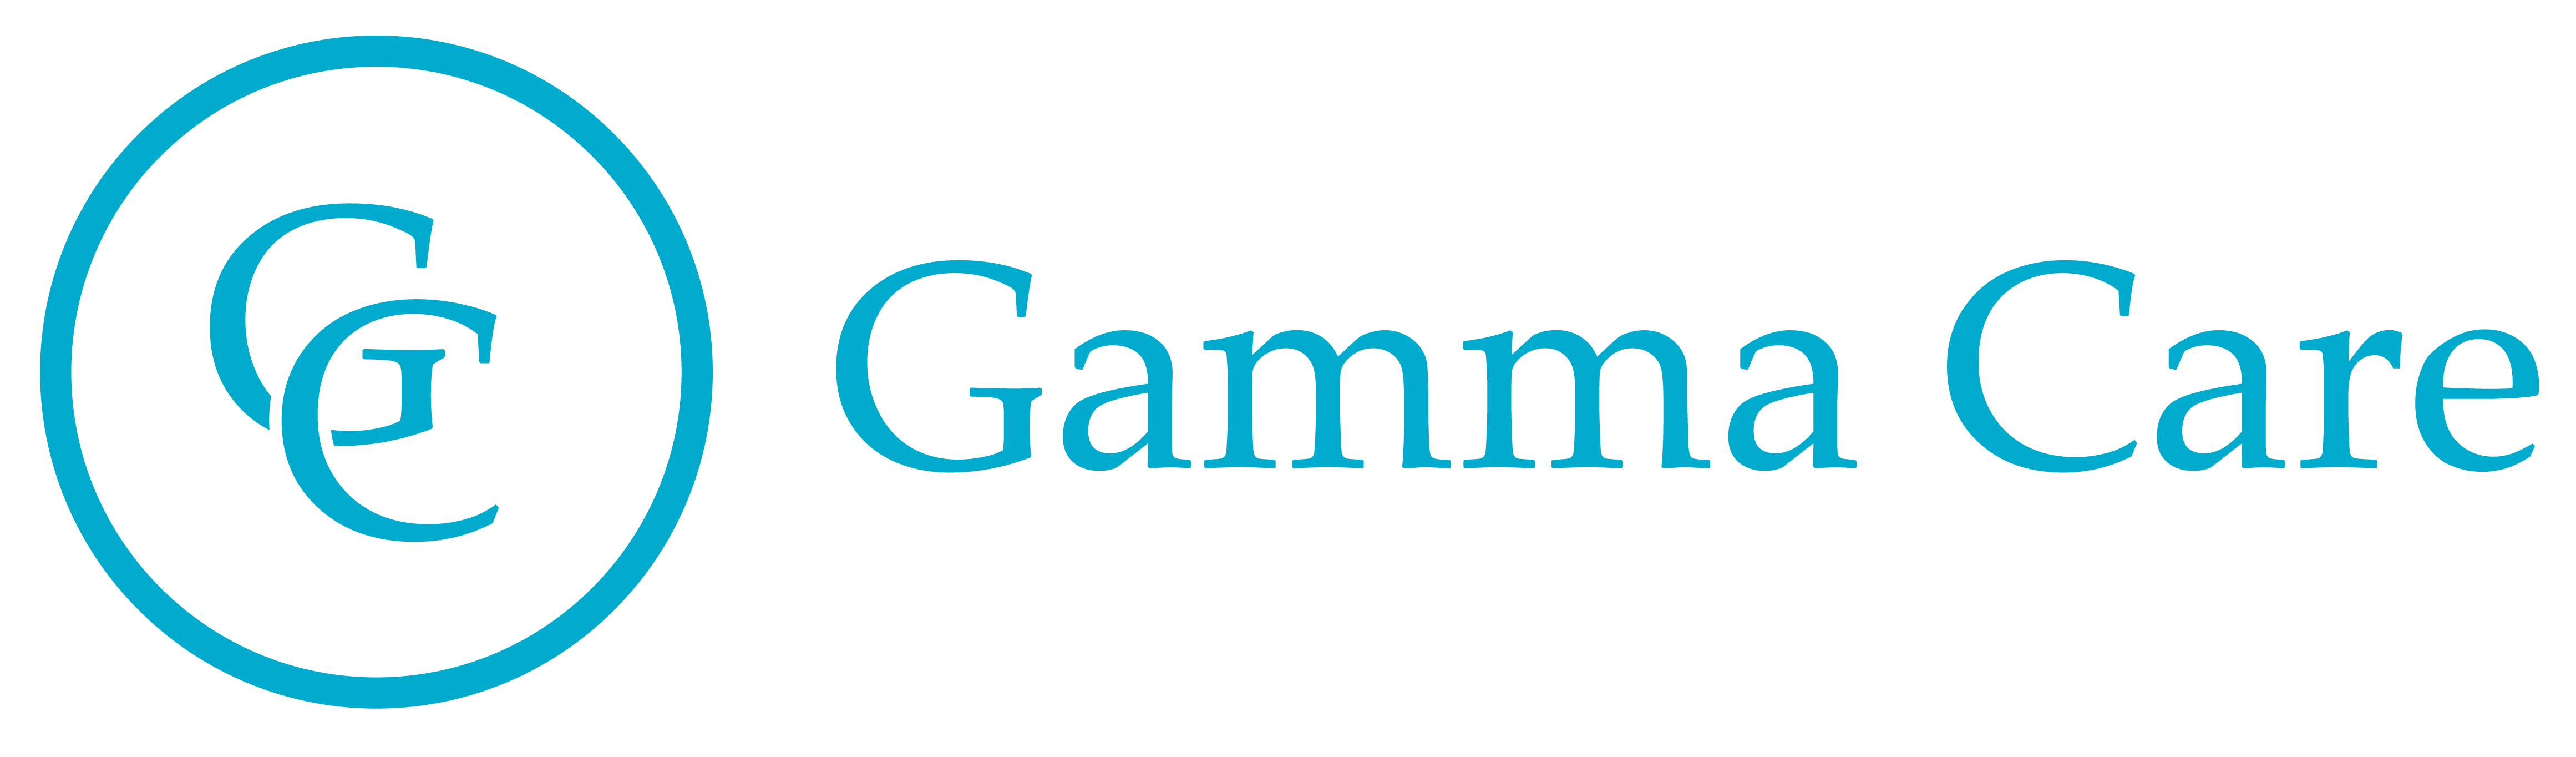 Gamma Care GmbH